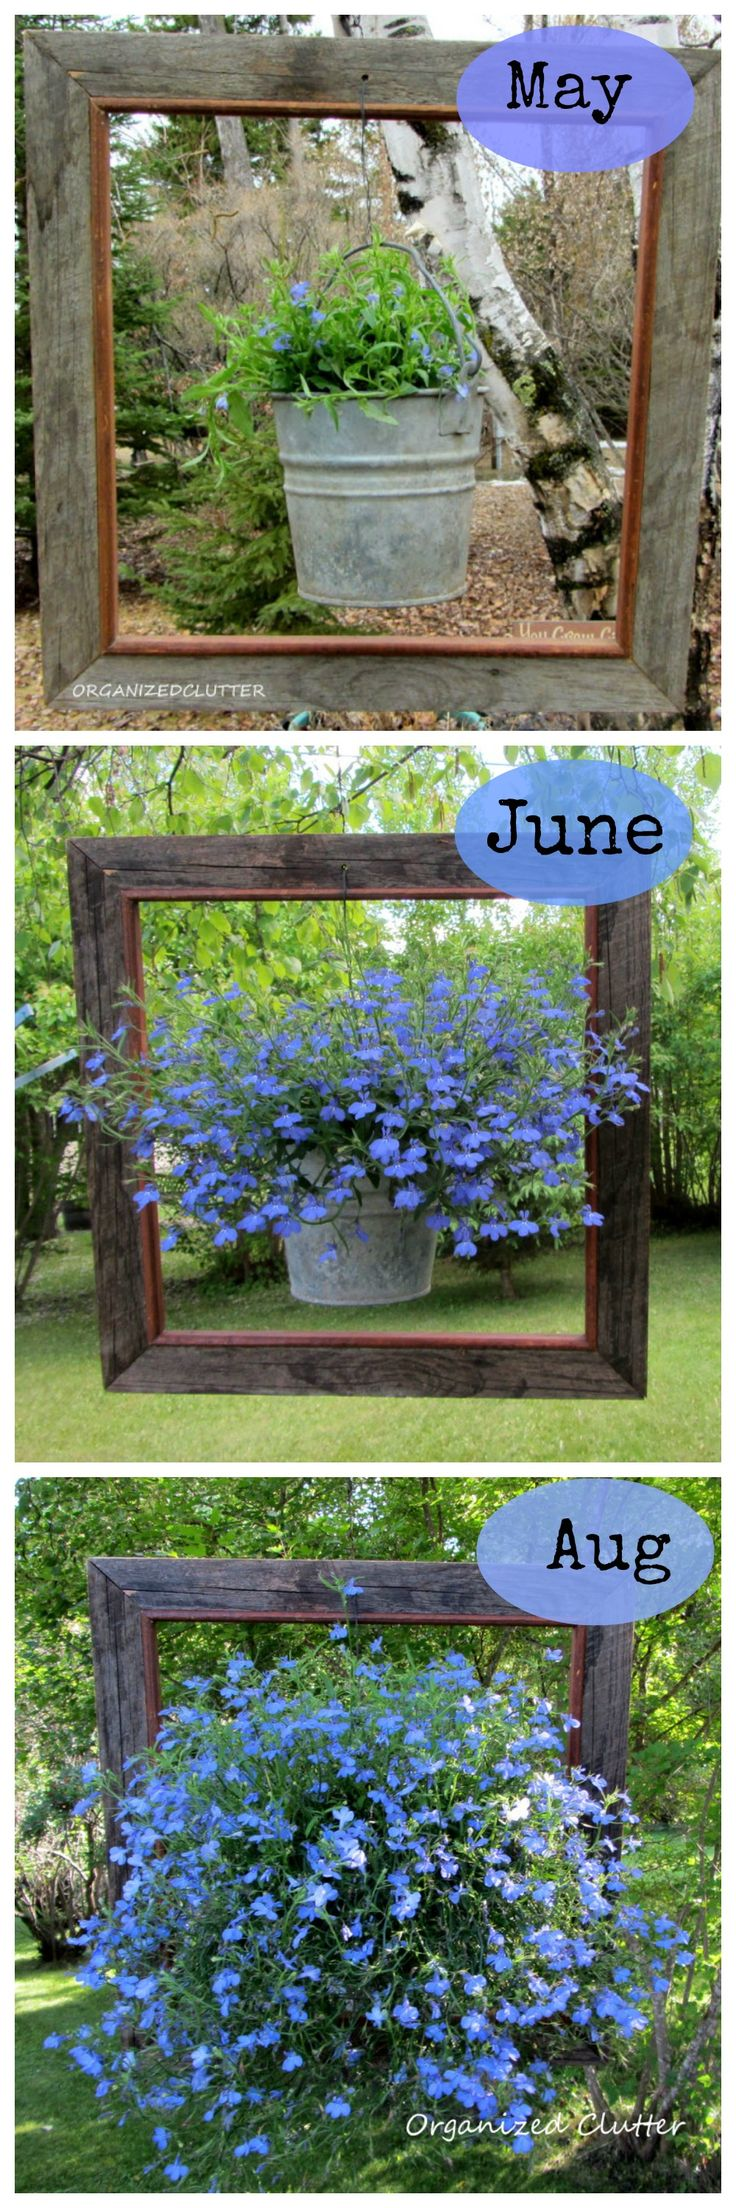 "I love this idea for my greenhouse! A different ""framed plant each month.This is will be fun! A Framed Lobelia"